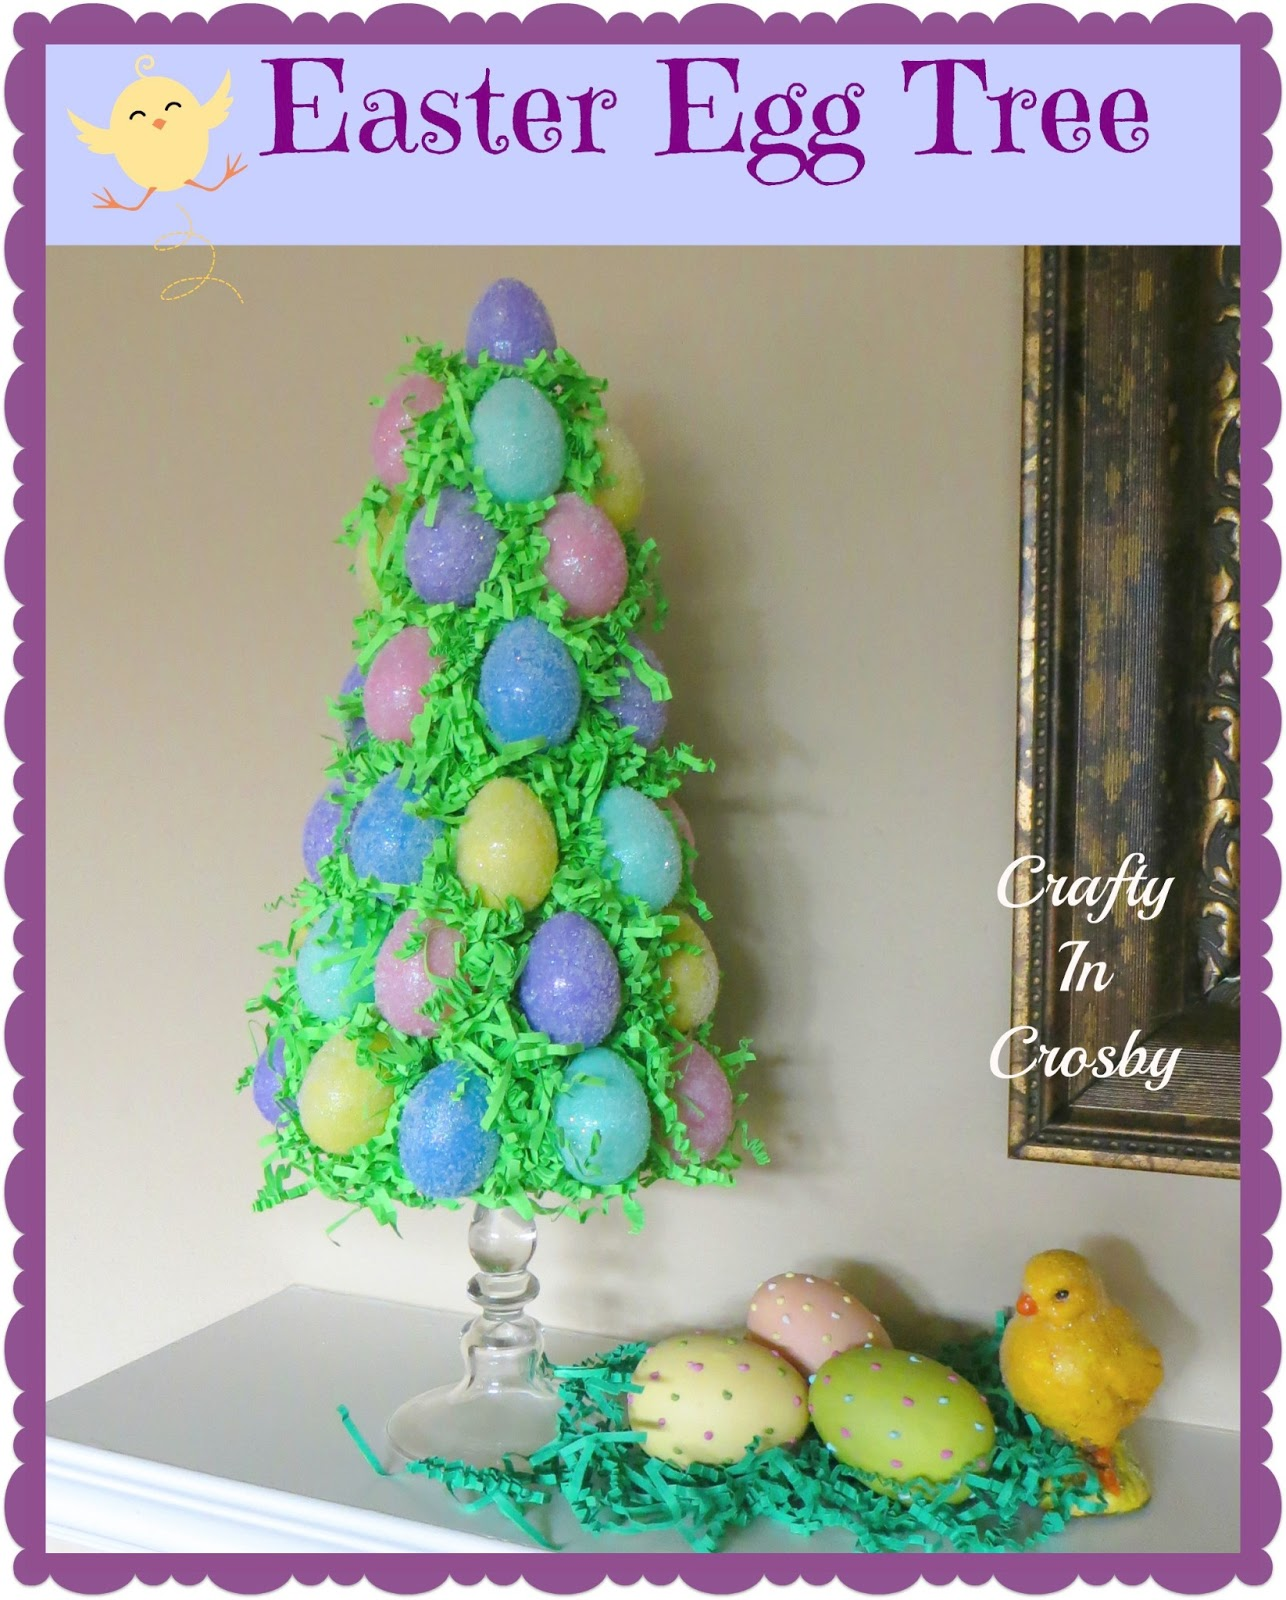 Crafty in crosby easter egg tree revisited How to make an easter egg tree